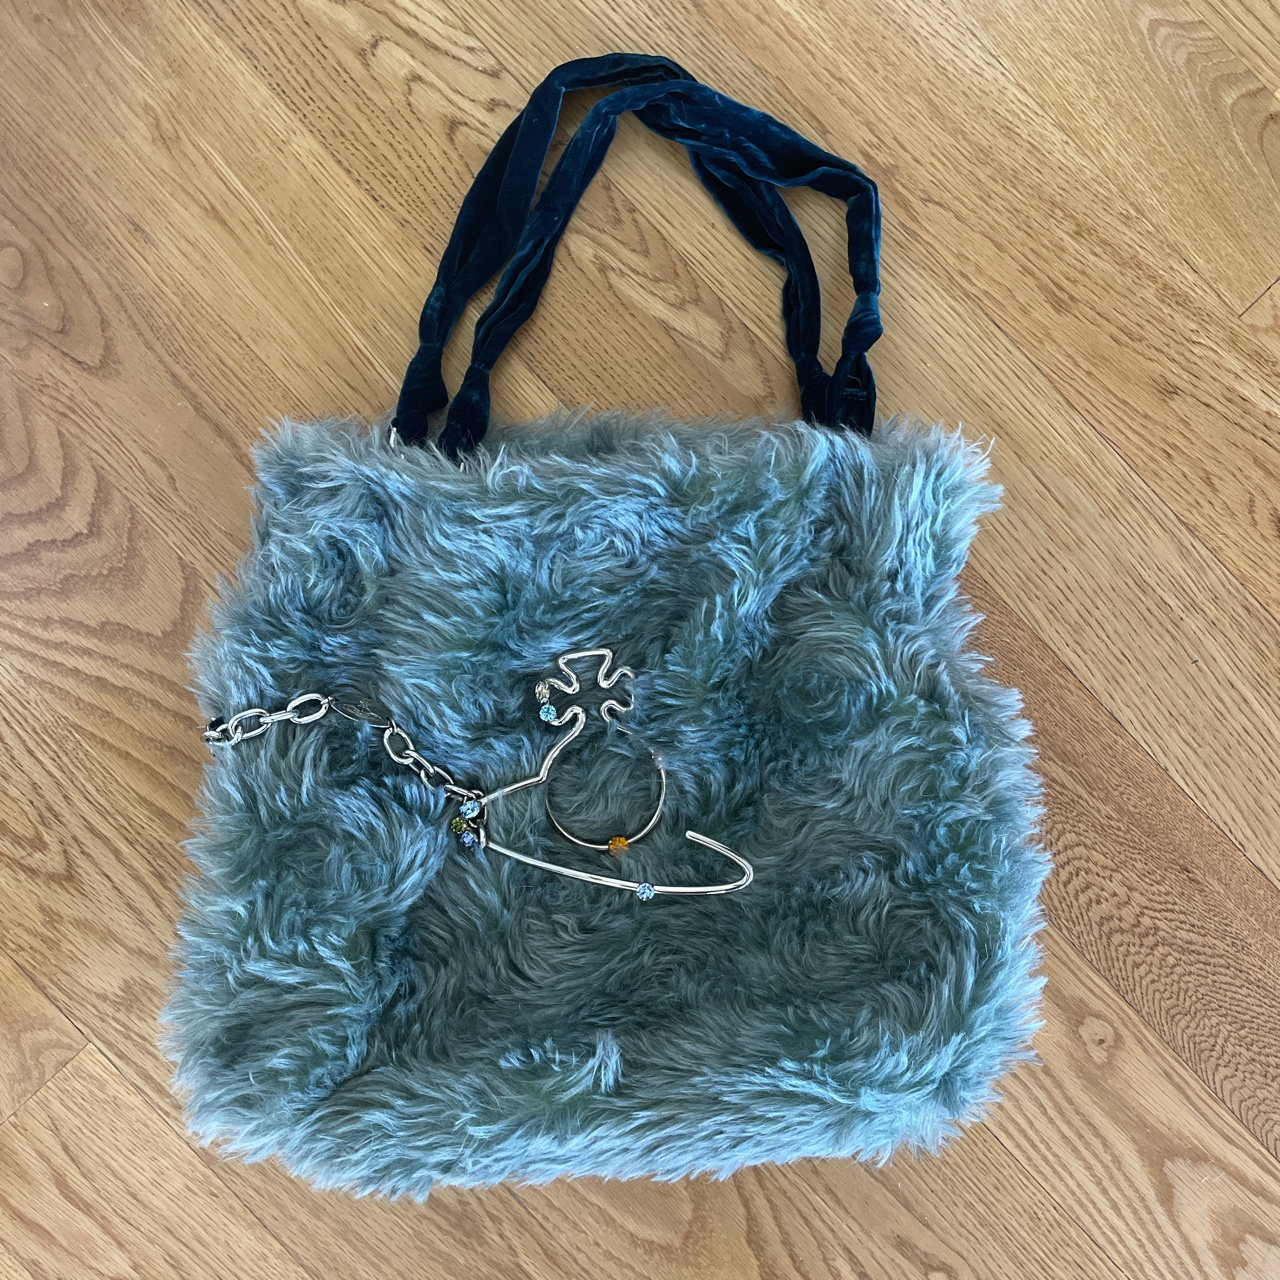 Product Image 1 - fuzzy Vivienne westwood tote bag.